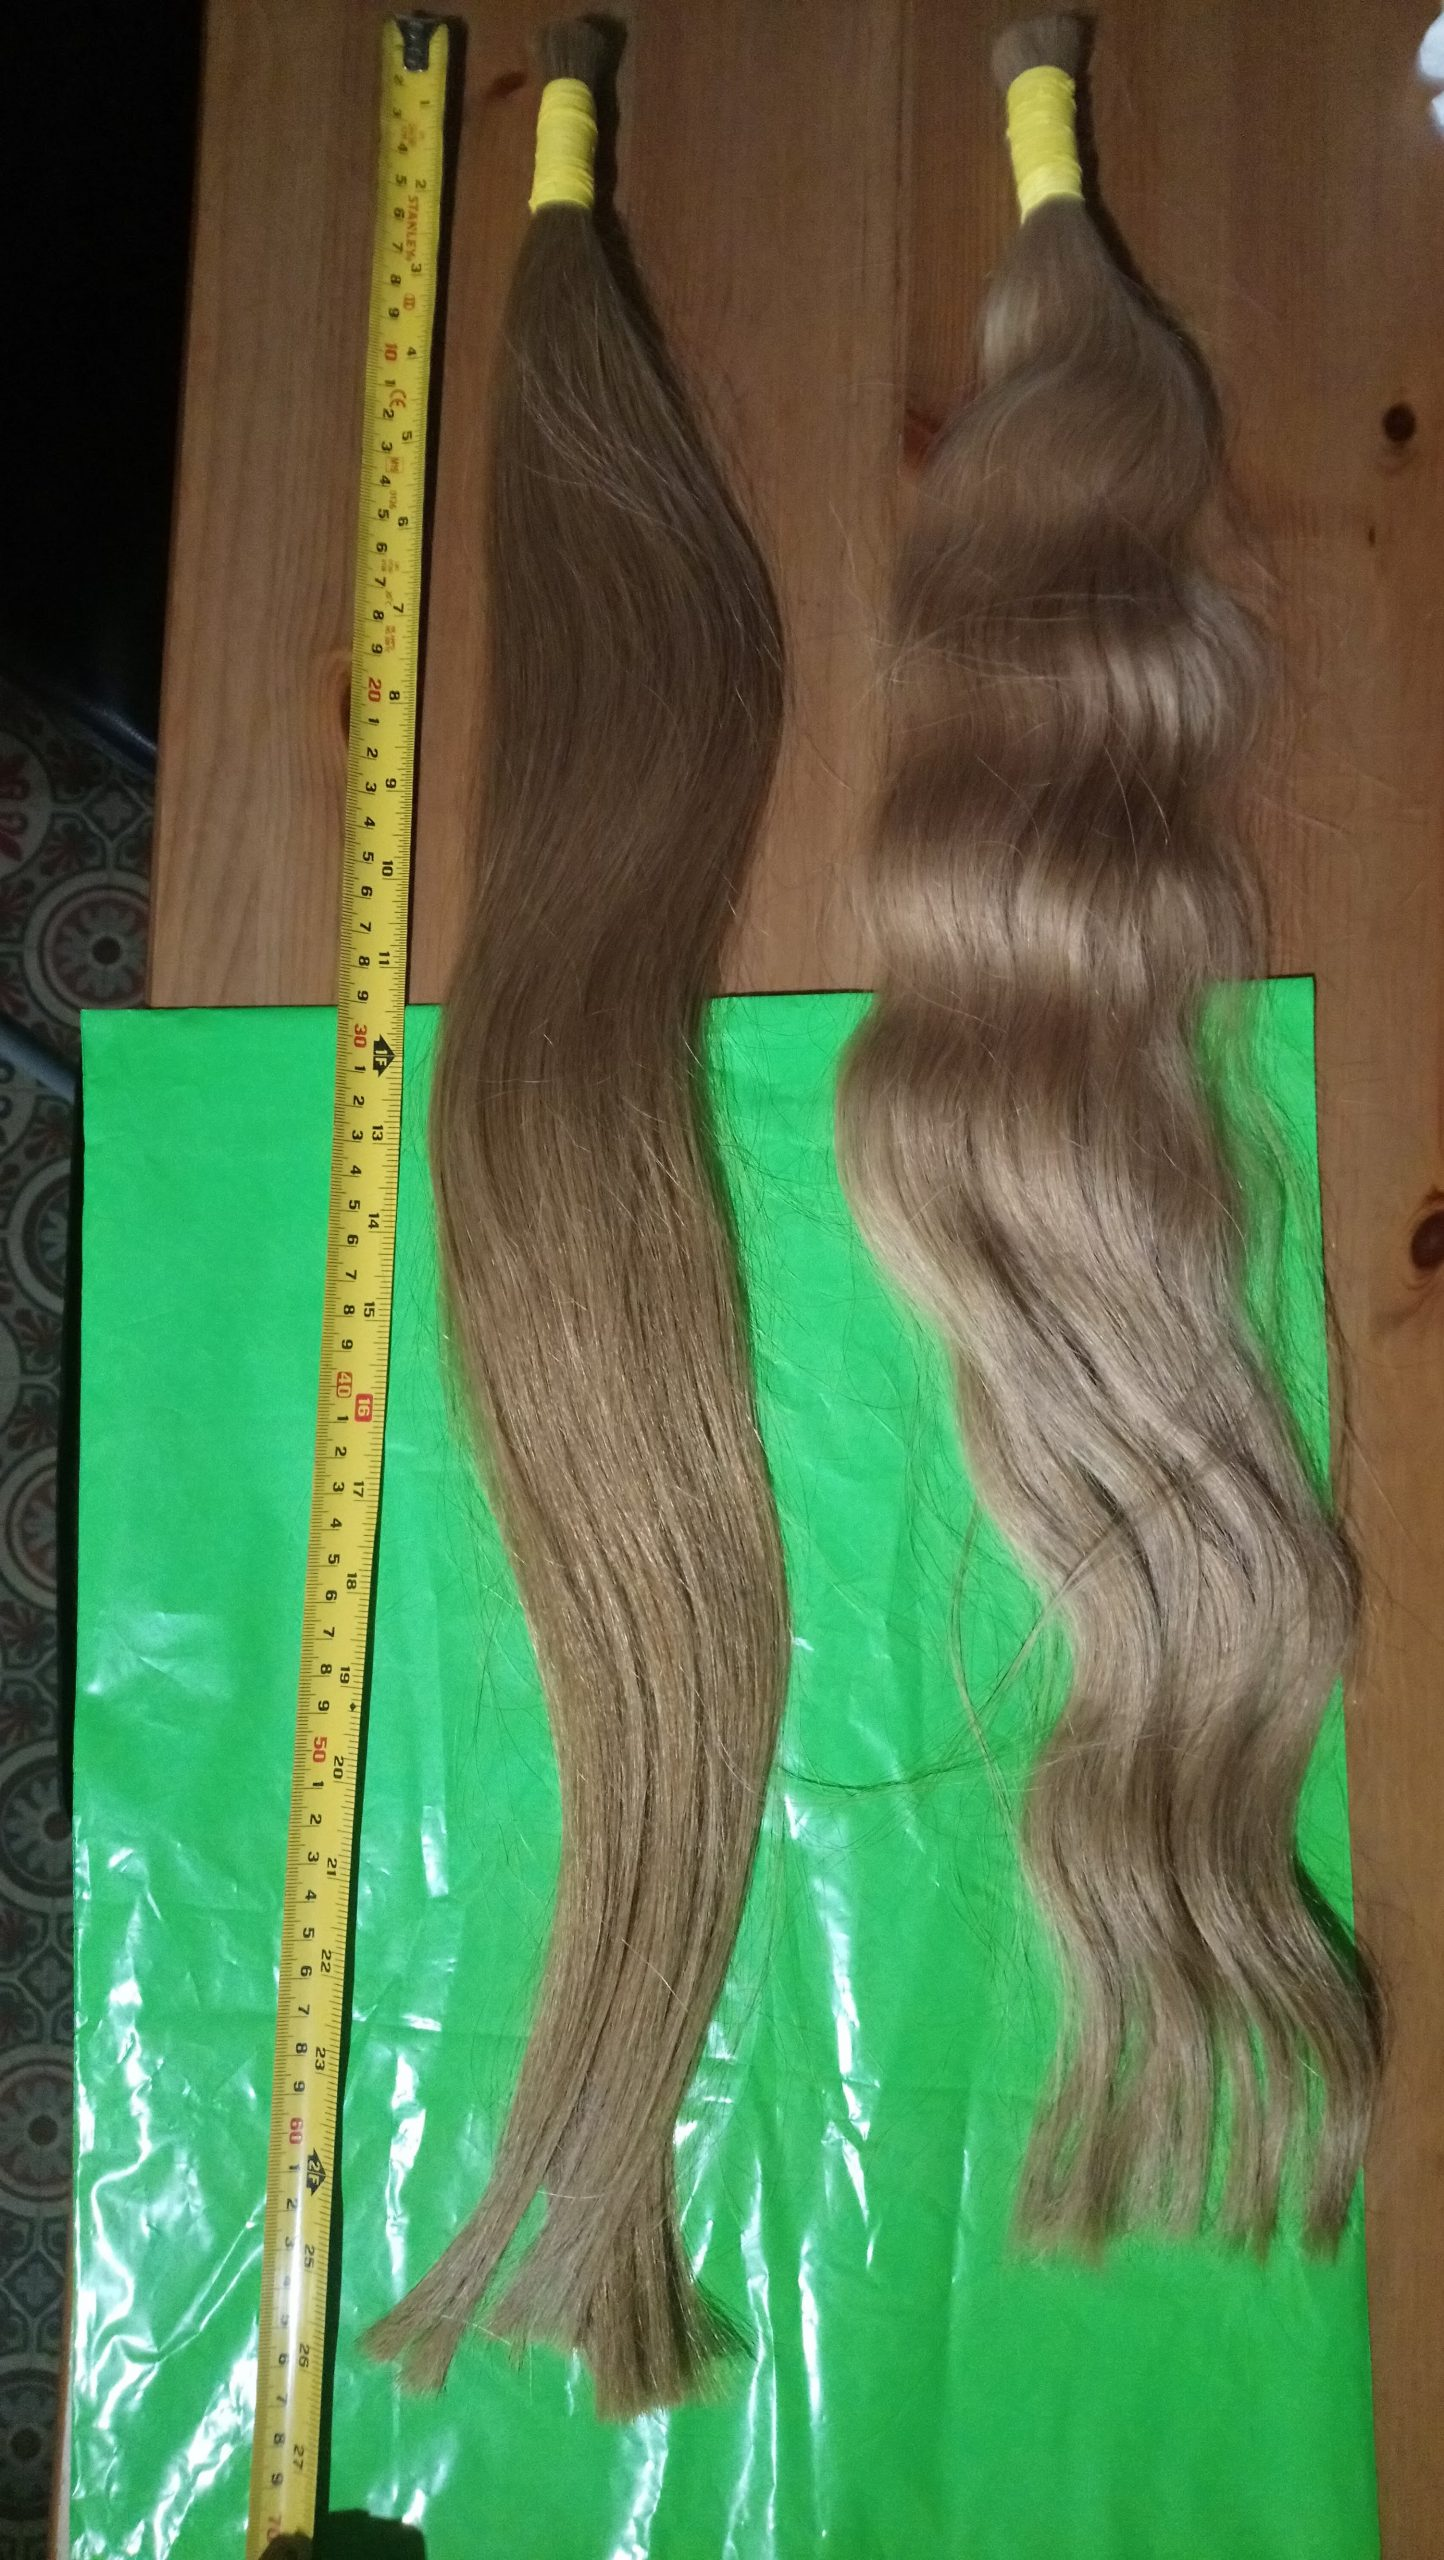 Quality Virgin Blonde two tails 2.5 inches thick and 26 inches long straight with wavy ends